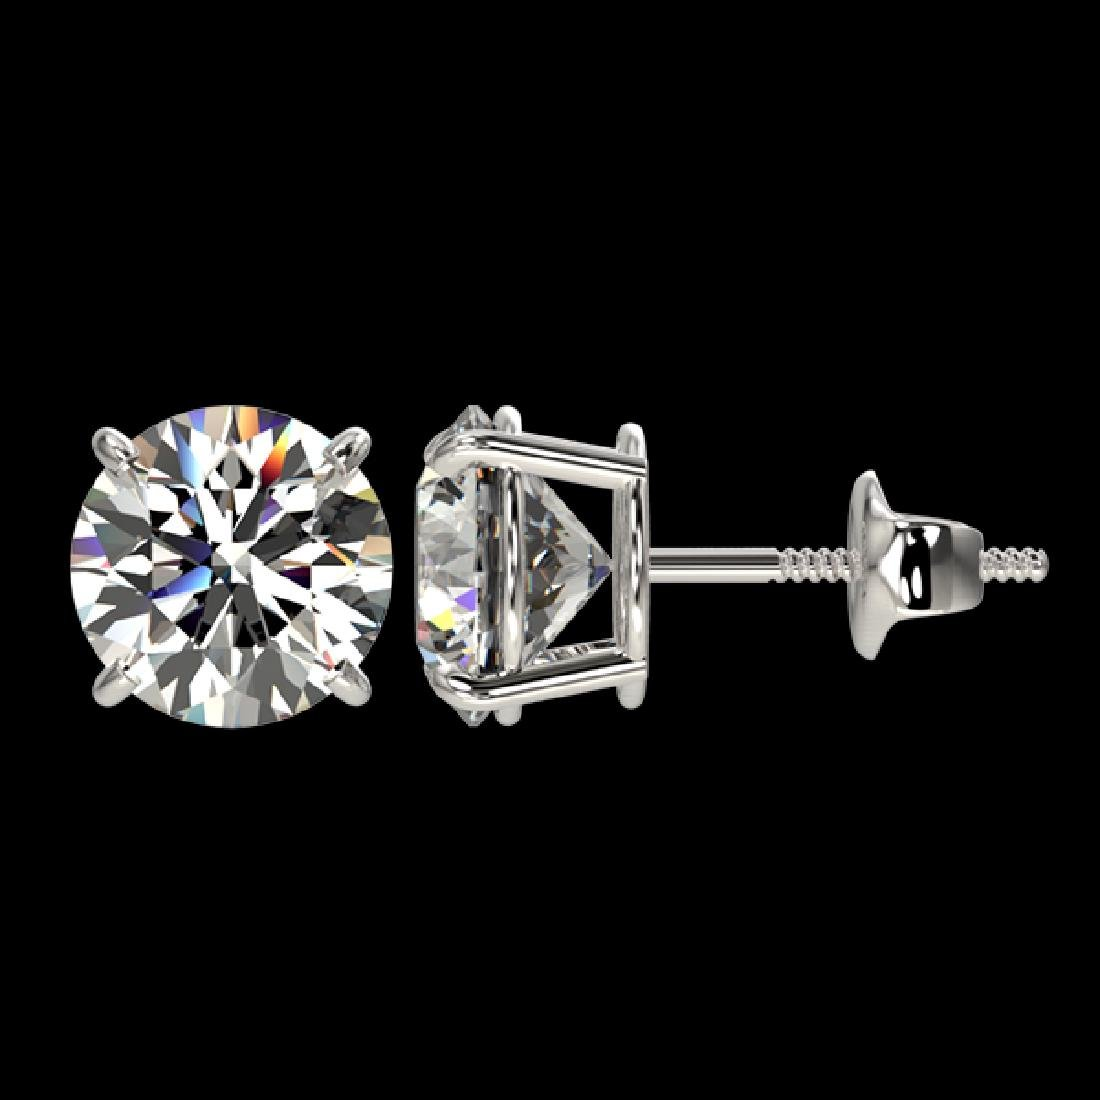 2.55 CTW Certified G-Si Quality Diamond Solitaire Stud - 2